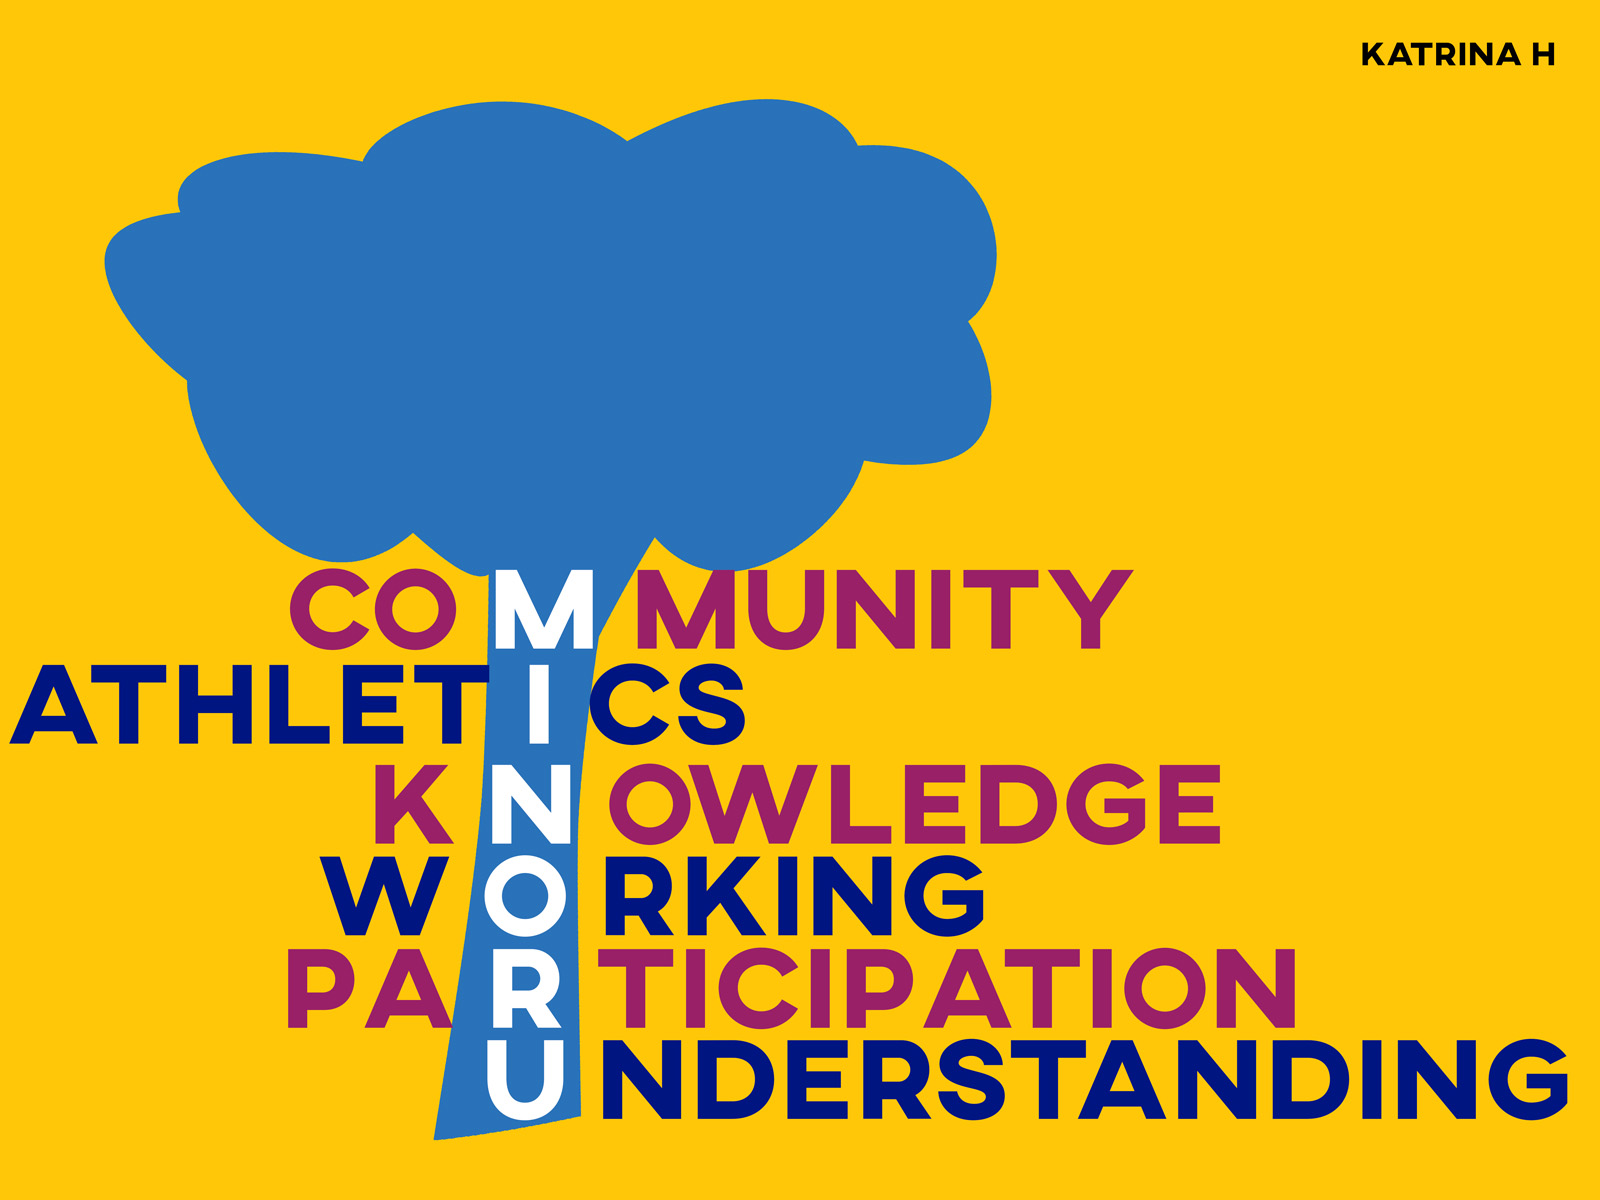 Community athletics knowledge working participation understanding